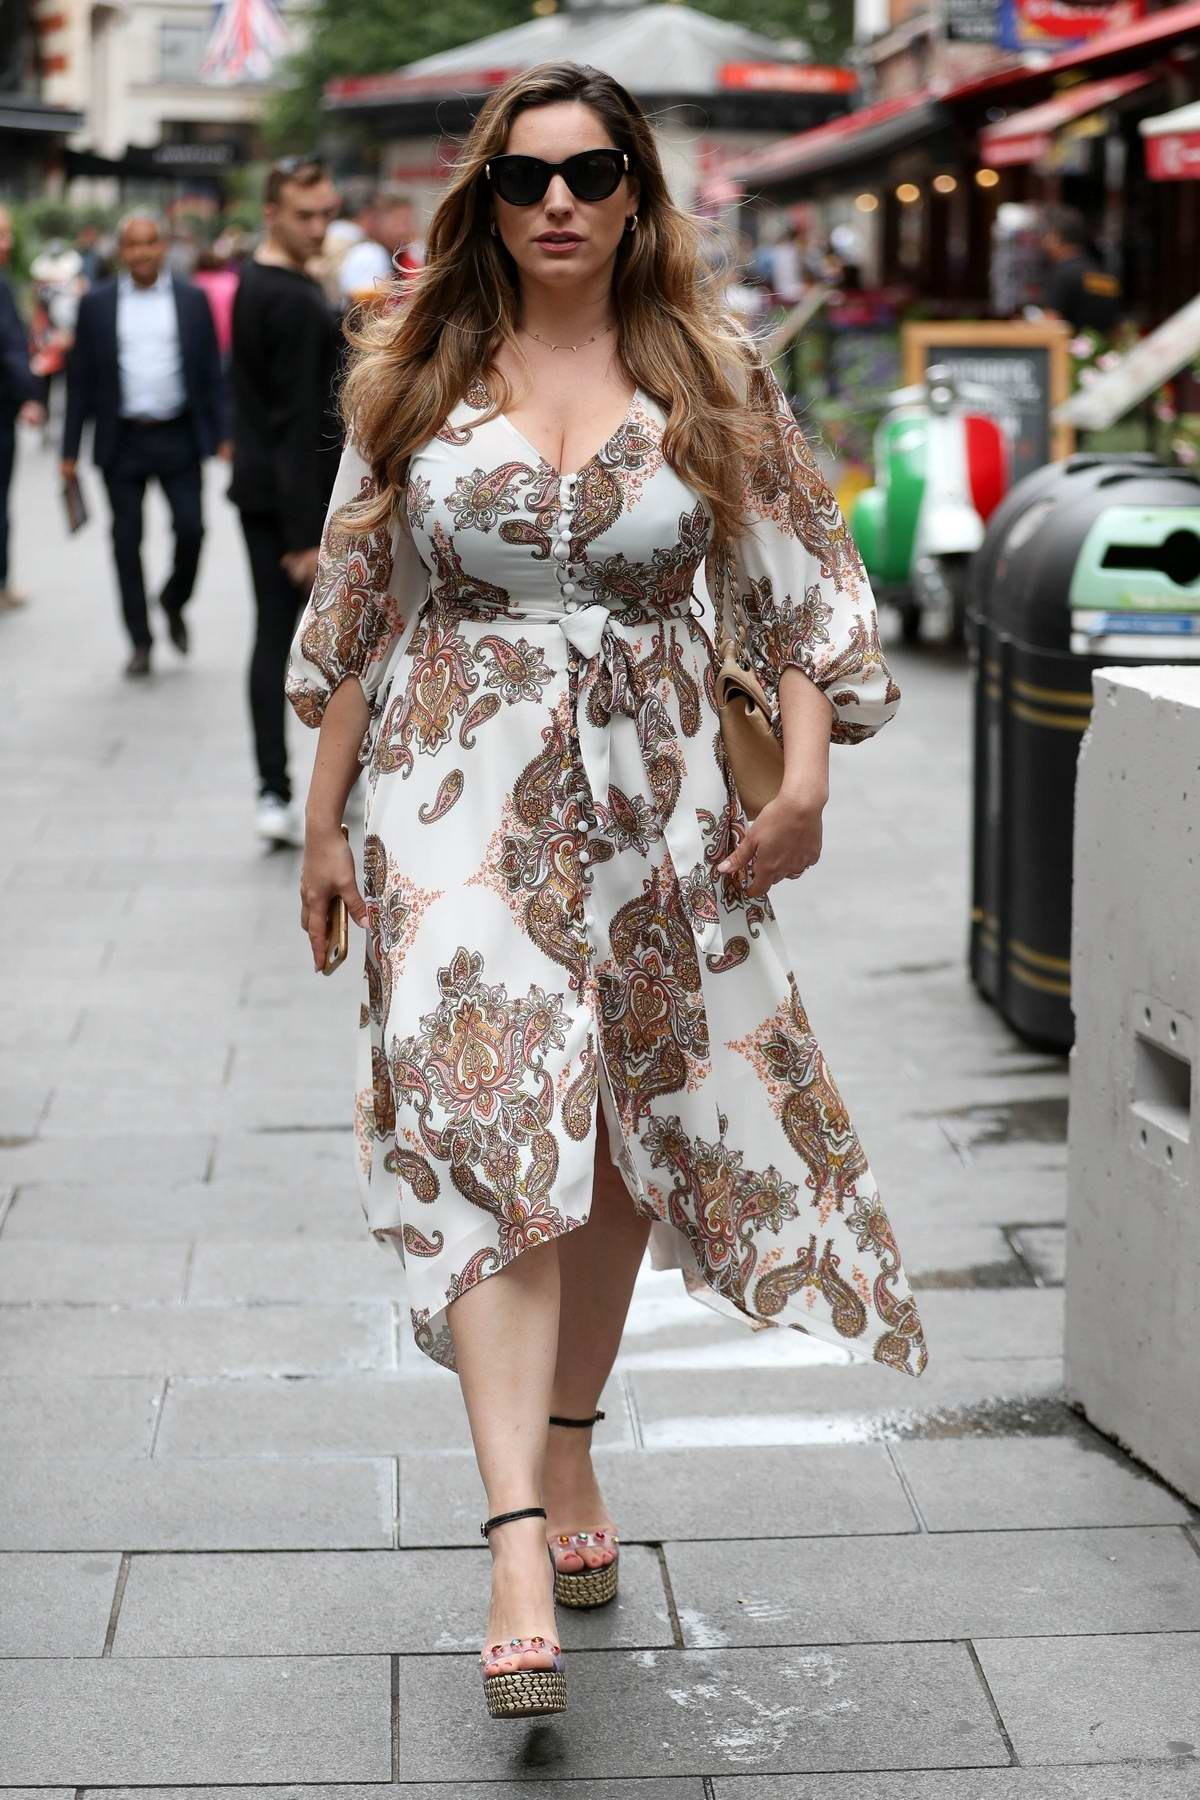 Kelly Brook looks elegant in paisley print summer dress as she leaves Global Radio Studios in London, UK